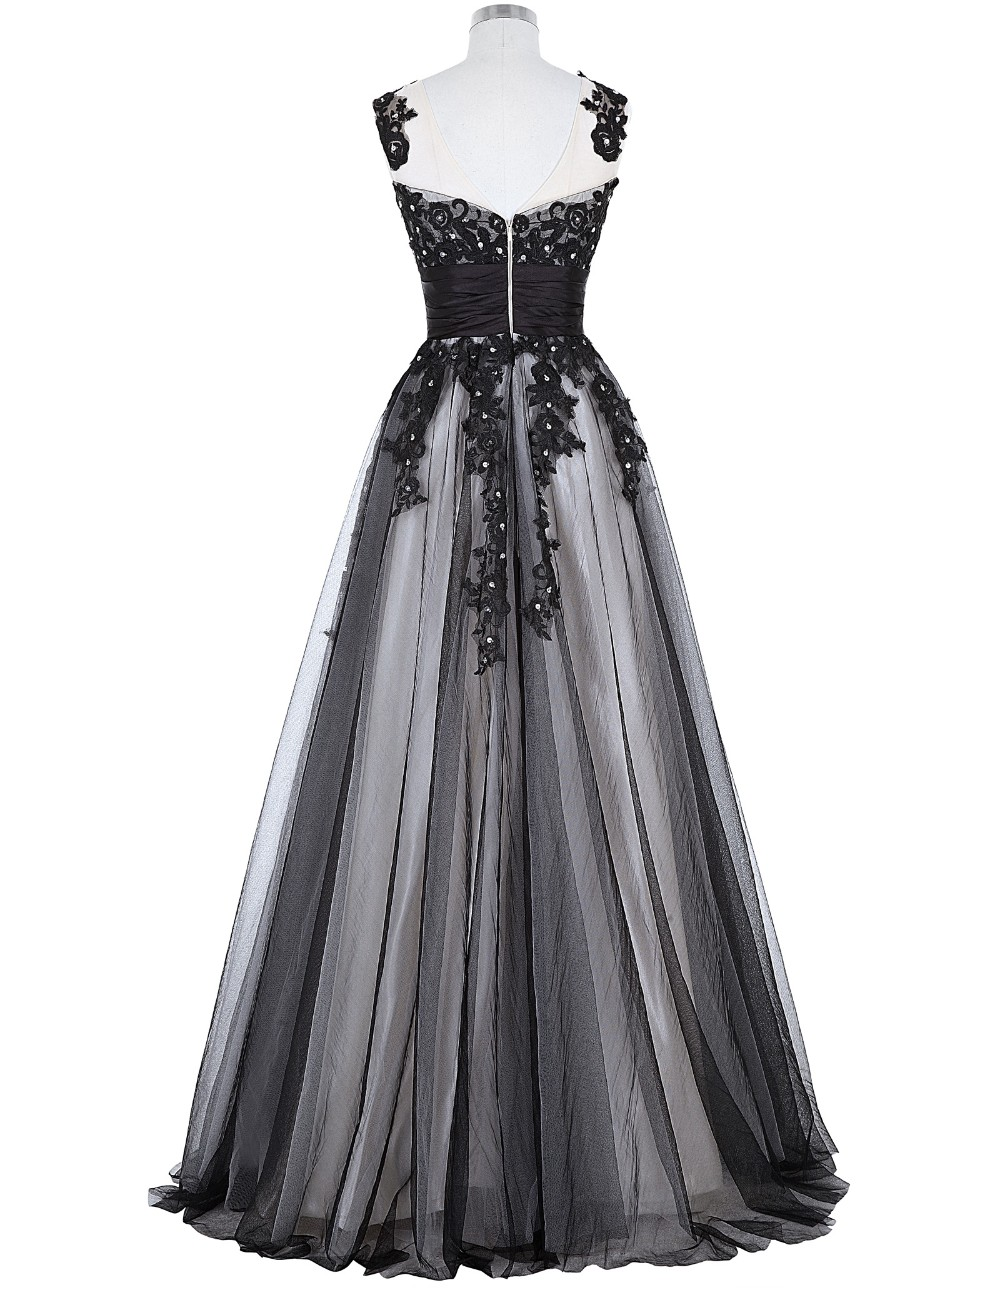 Grace Karin Long Prom Dress 2018 Elegant Black Appliques Sleeveless Soft Tulle Satin Real Picture Robes De Soiree Prom Dresses 10